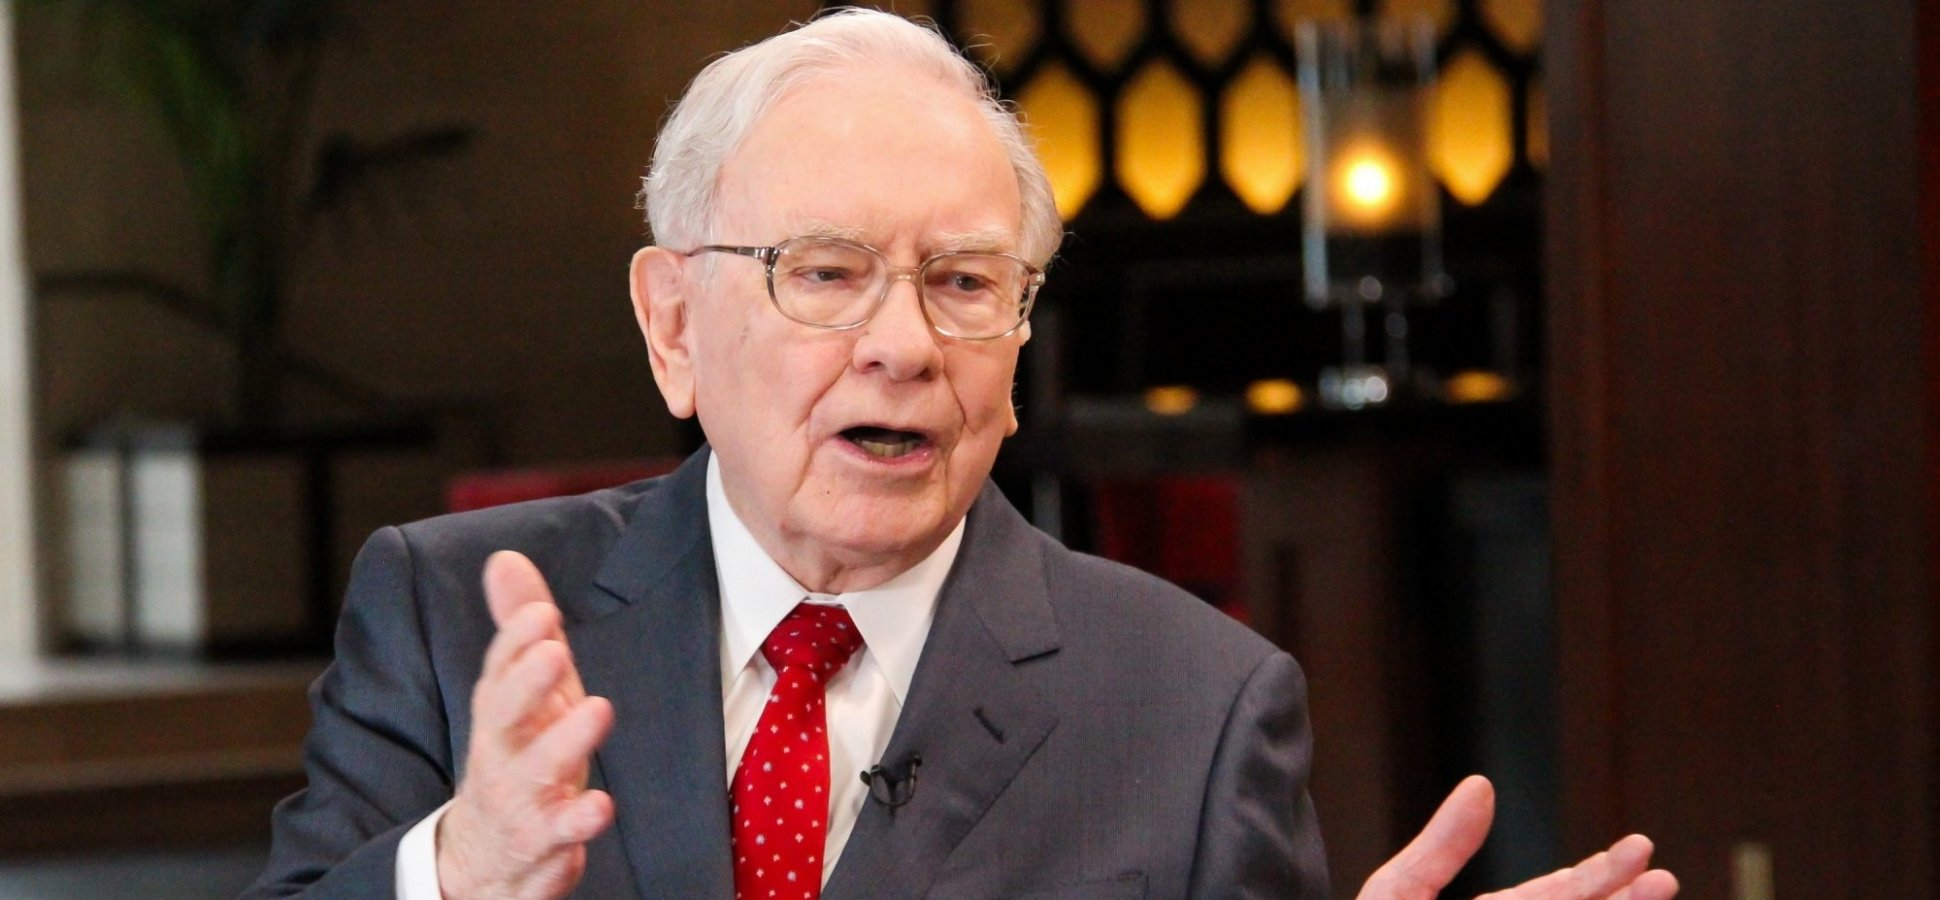 6 Common-Sense Things Warren Buffett Says You Must Do to Be Happy and Successful